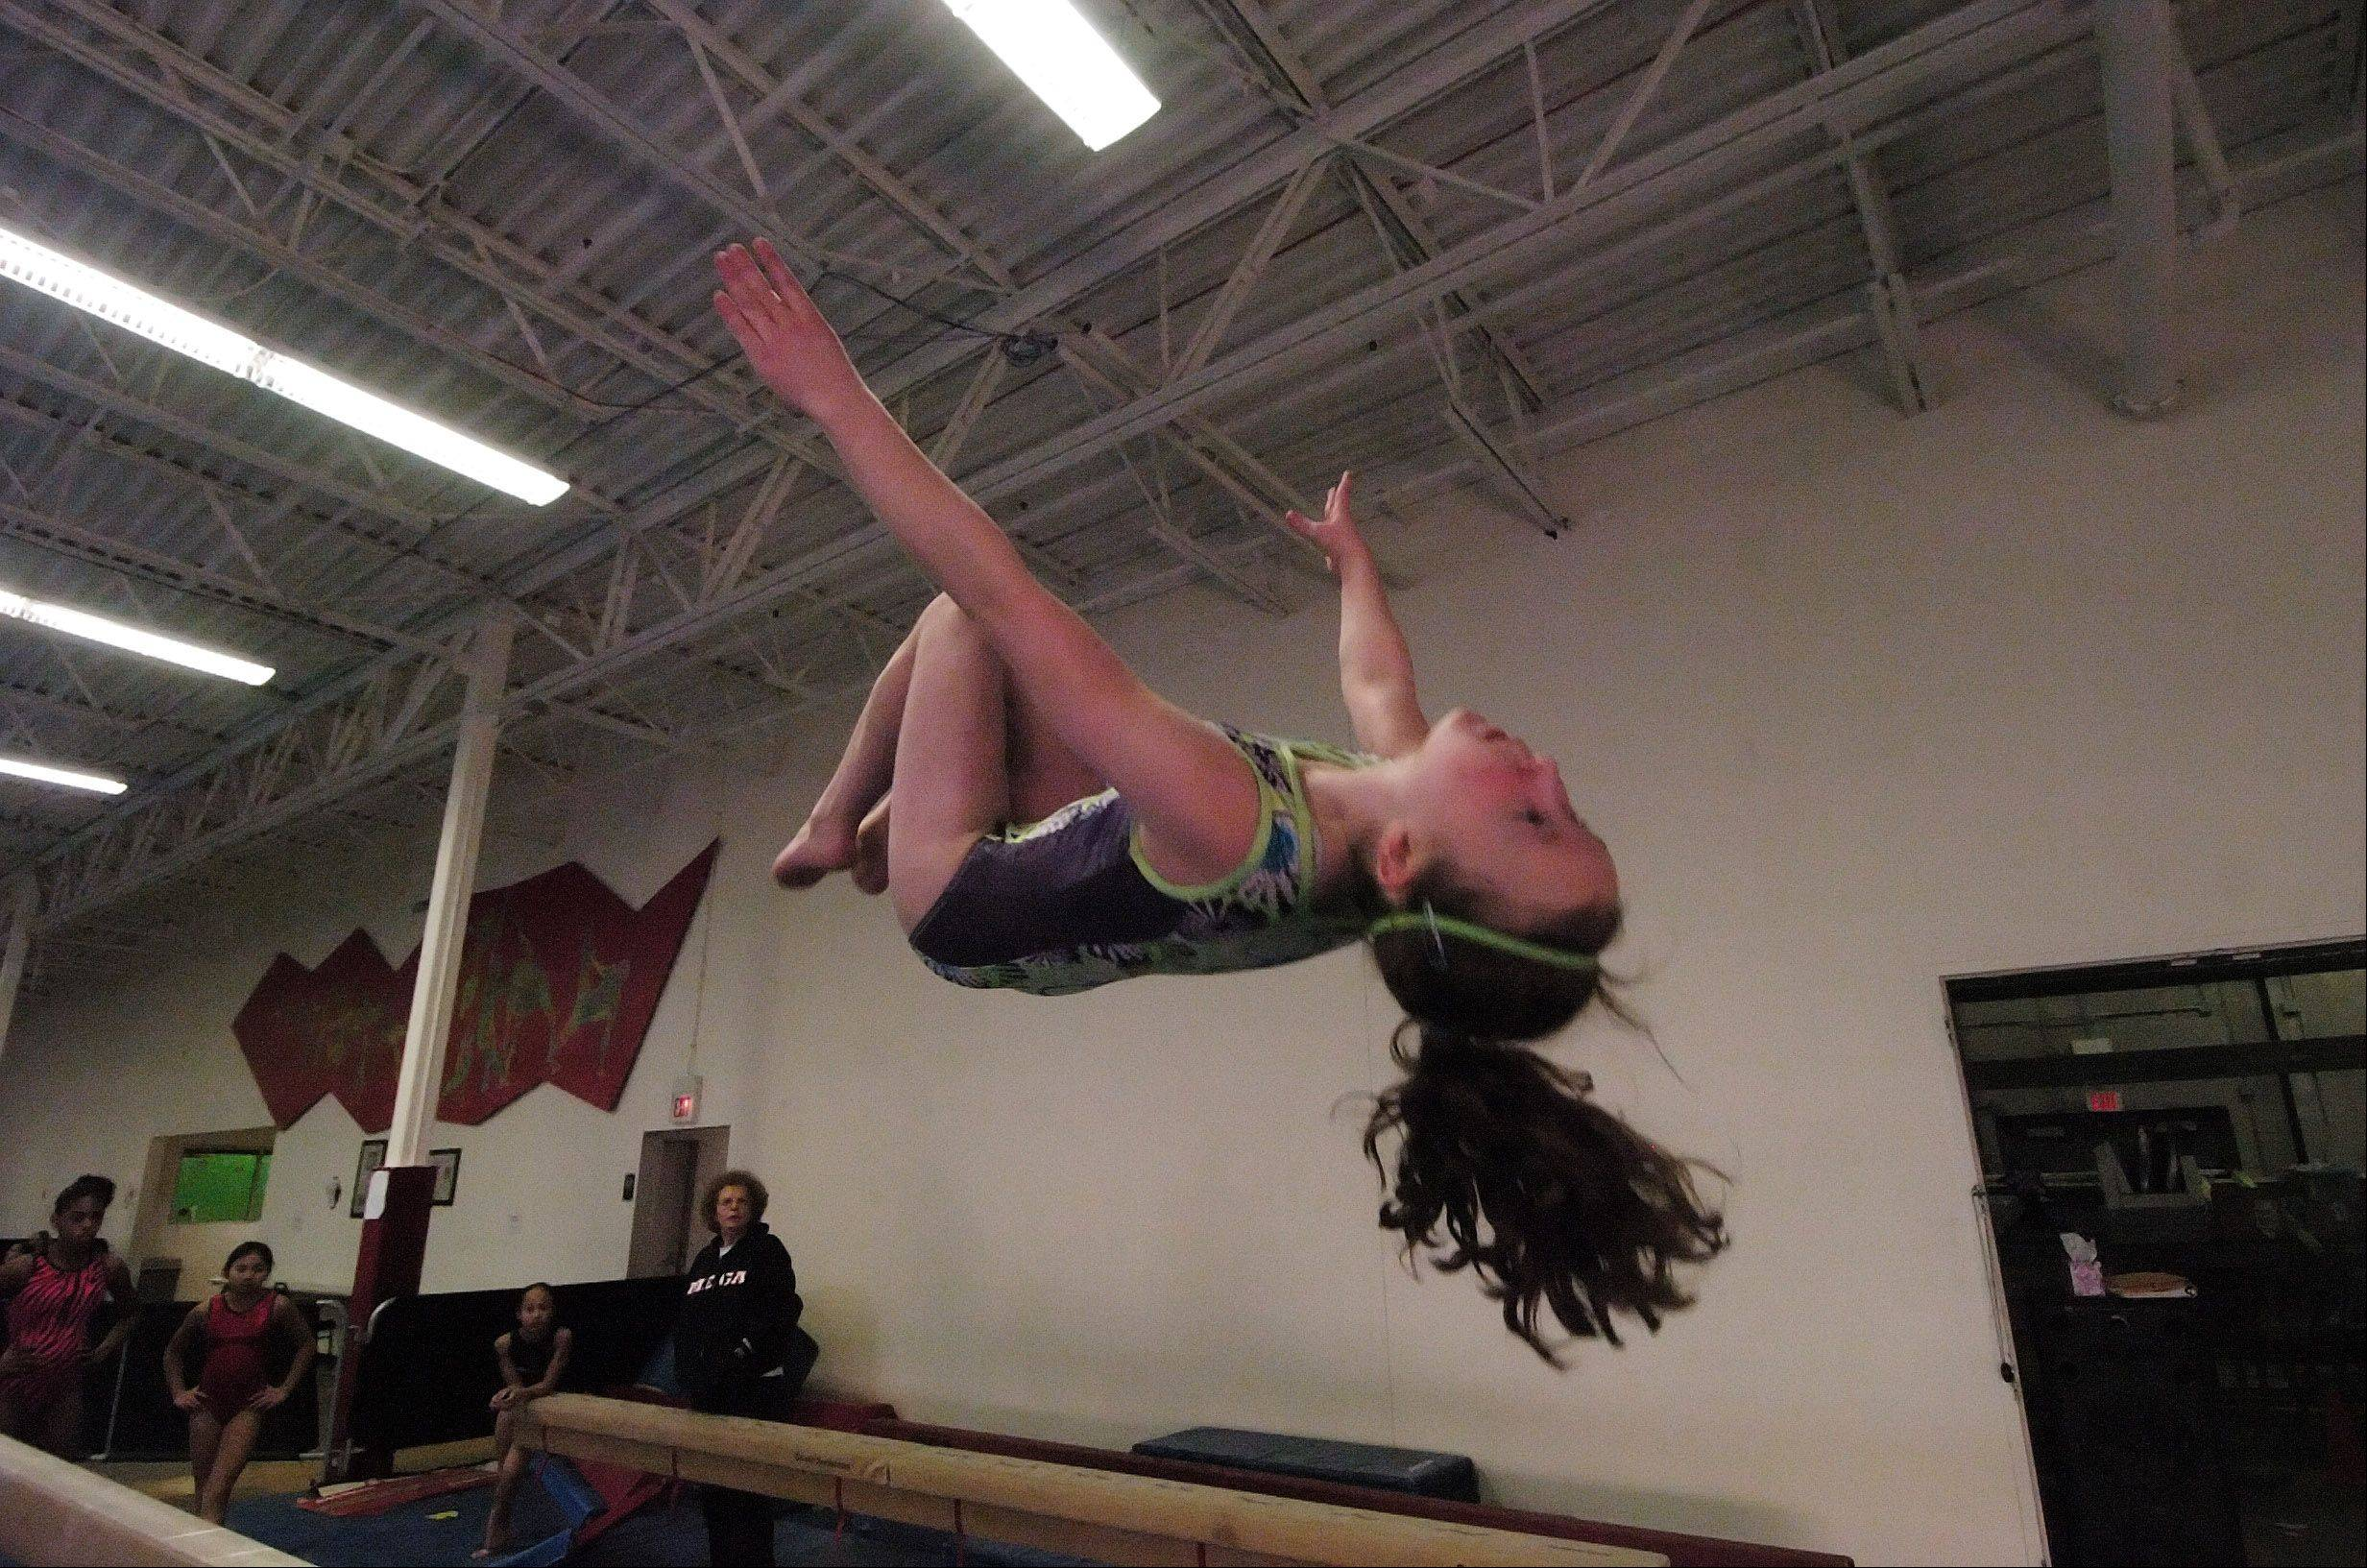 Sandie Merena, 11, of Elgin practices her dismount from the balance beam at Midwest Elite Gymnastics Academy in South Barrington. The academy will be moving to Elgin in January.